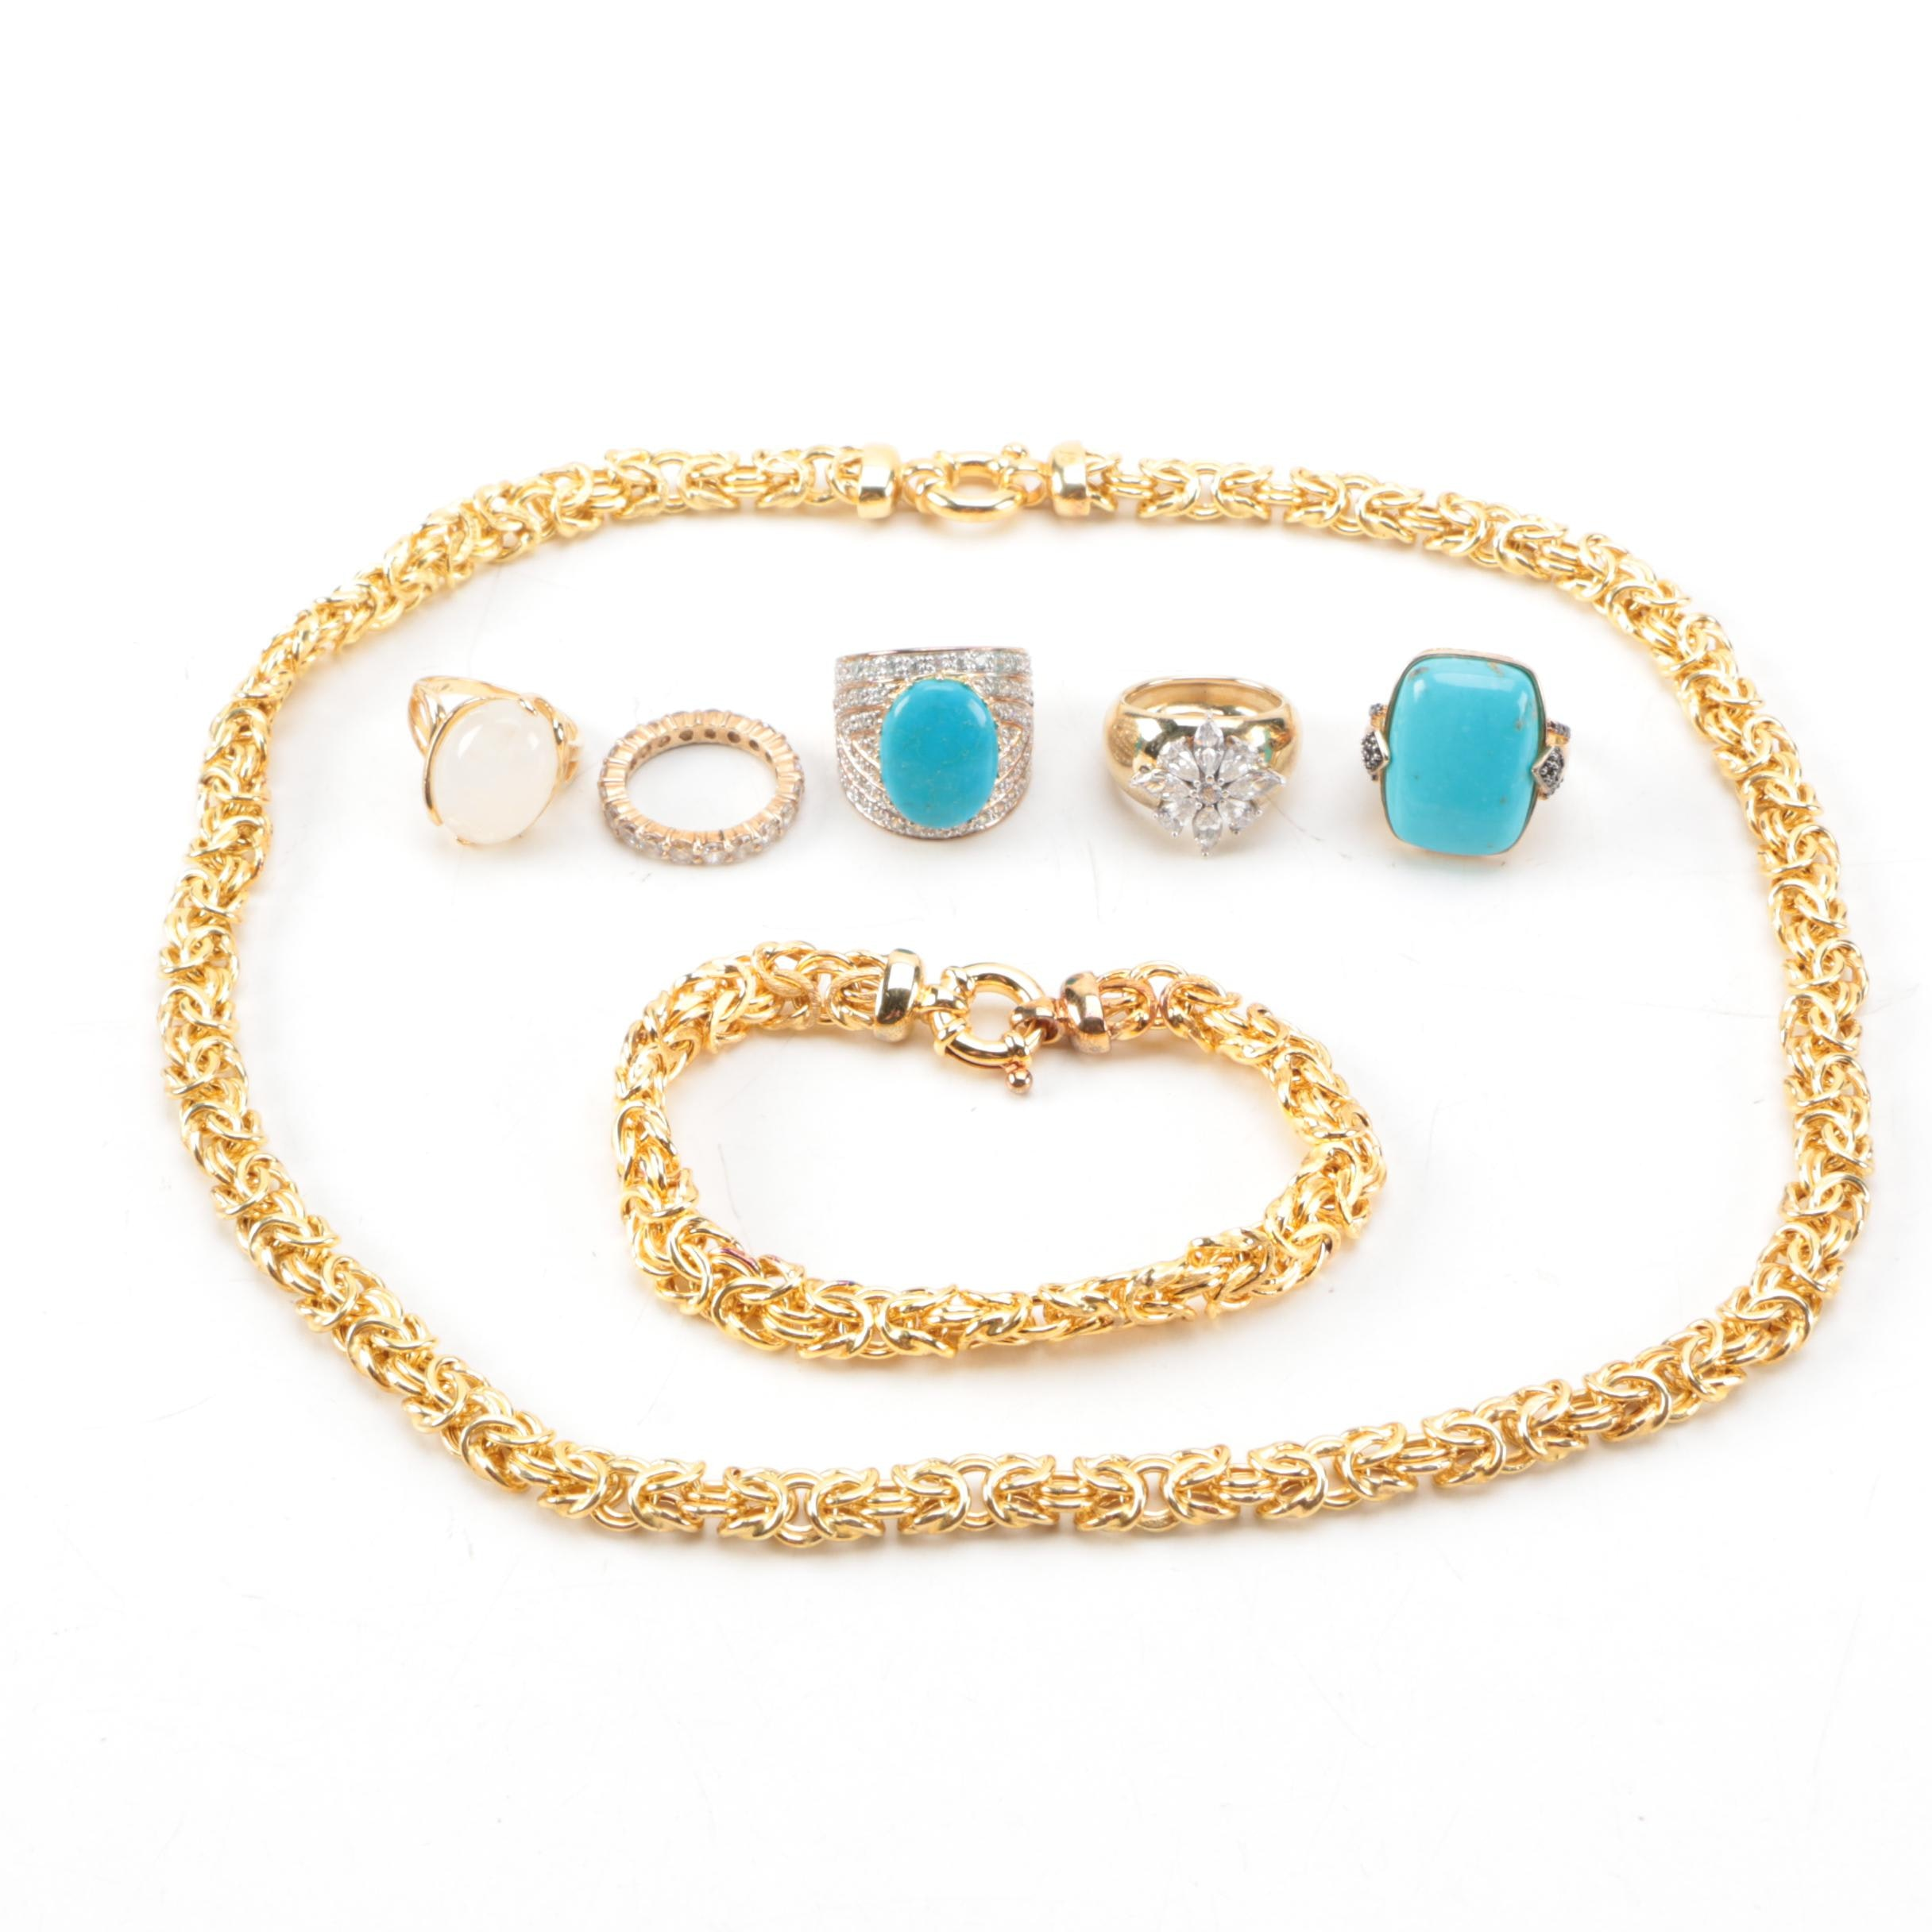 Gold Wash Sterling Silver Gemstone Jewelry Assortment